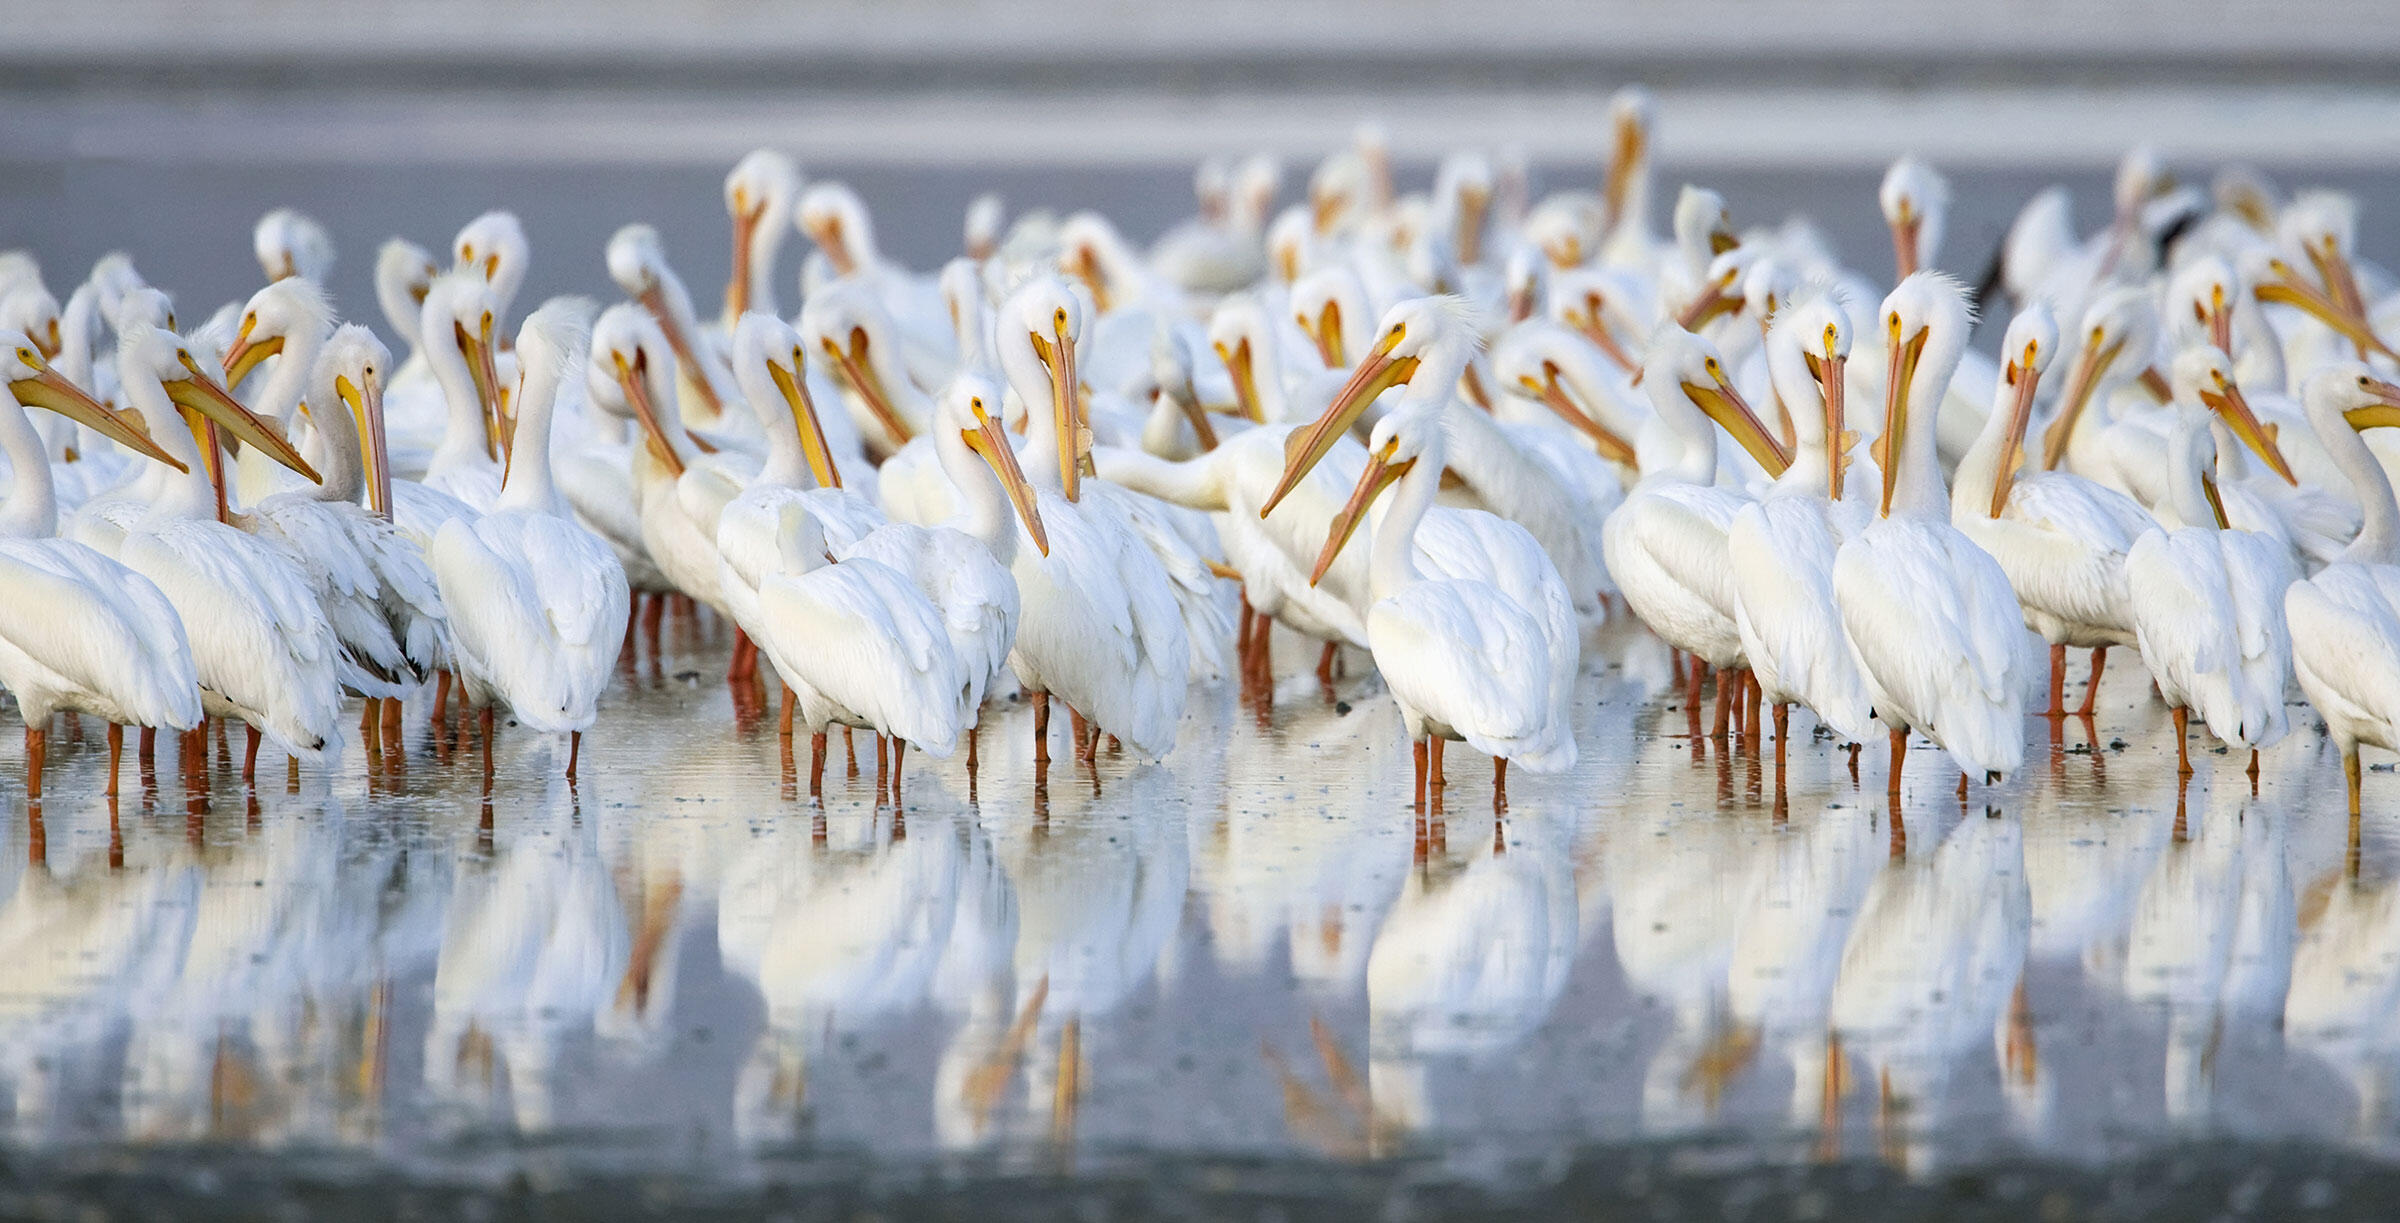 The Salton Sea is a vital stopover site for migratory species like American White Pelicans. Design Pics Inc/National Geographic Creative